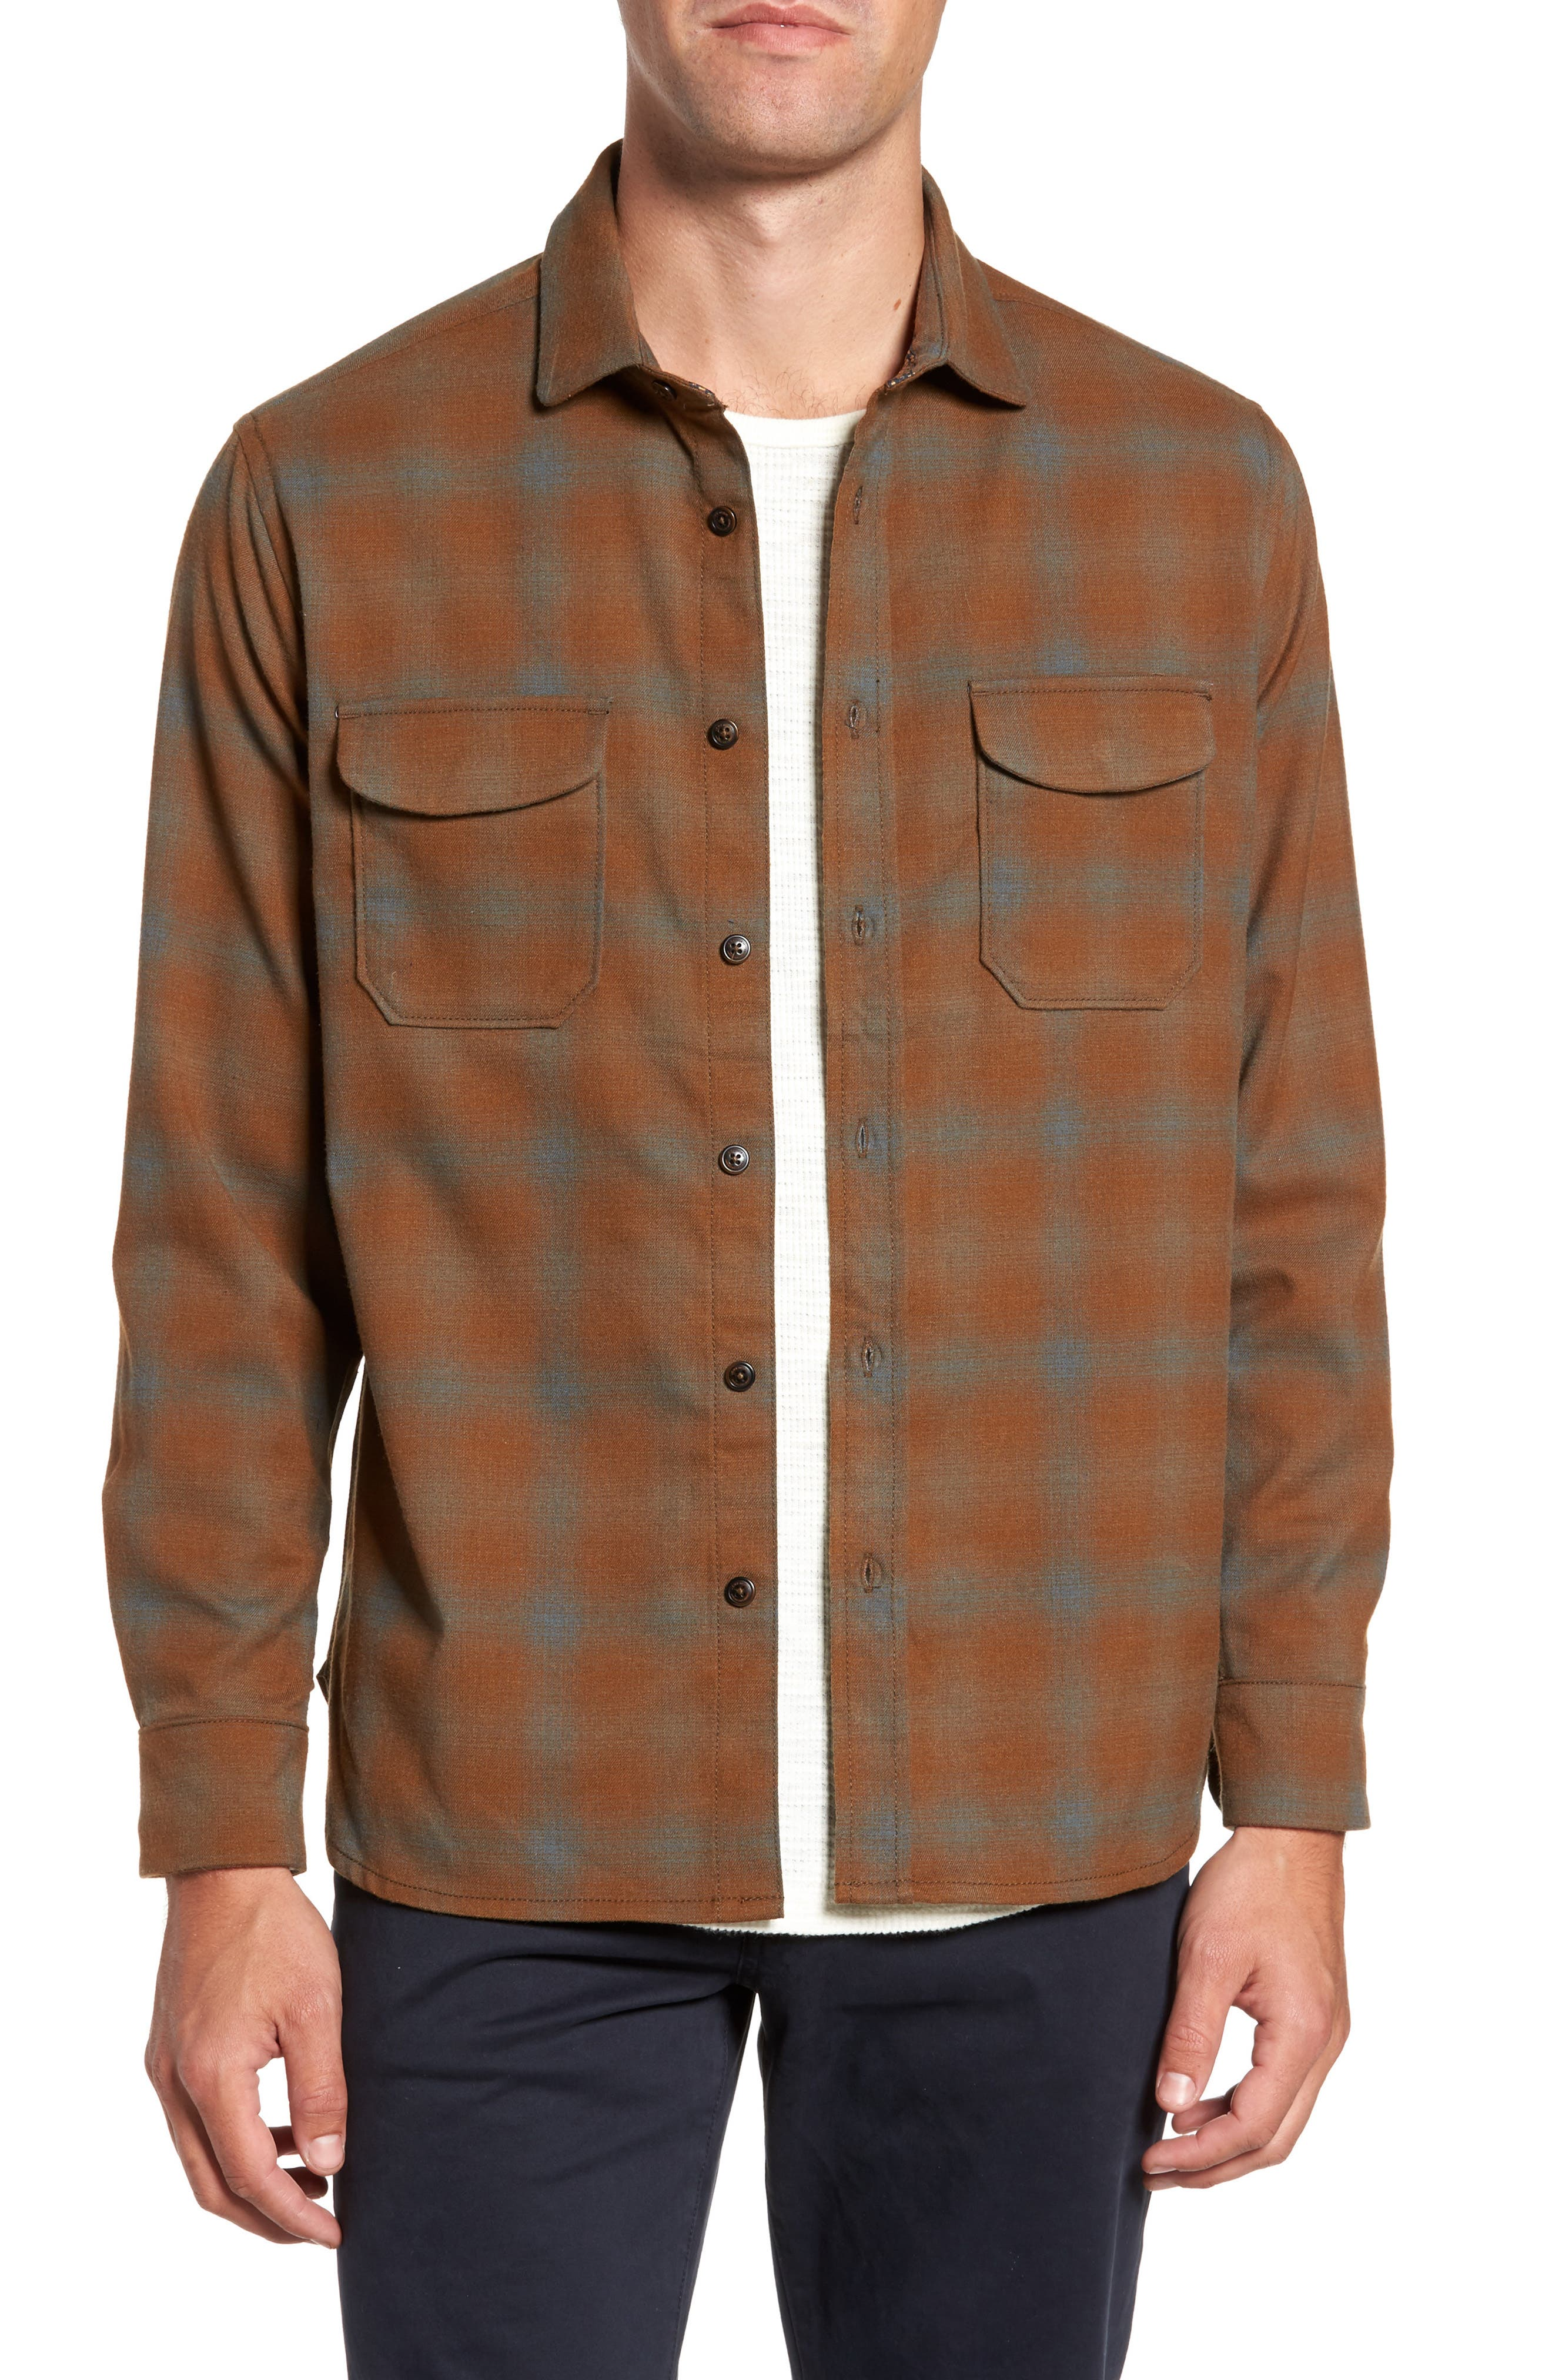 Peak Flannel Sport Shirt,                             Main thumbnail 1, color,                             Eagle Nest Heather